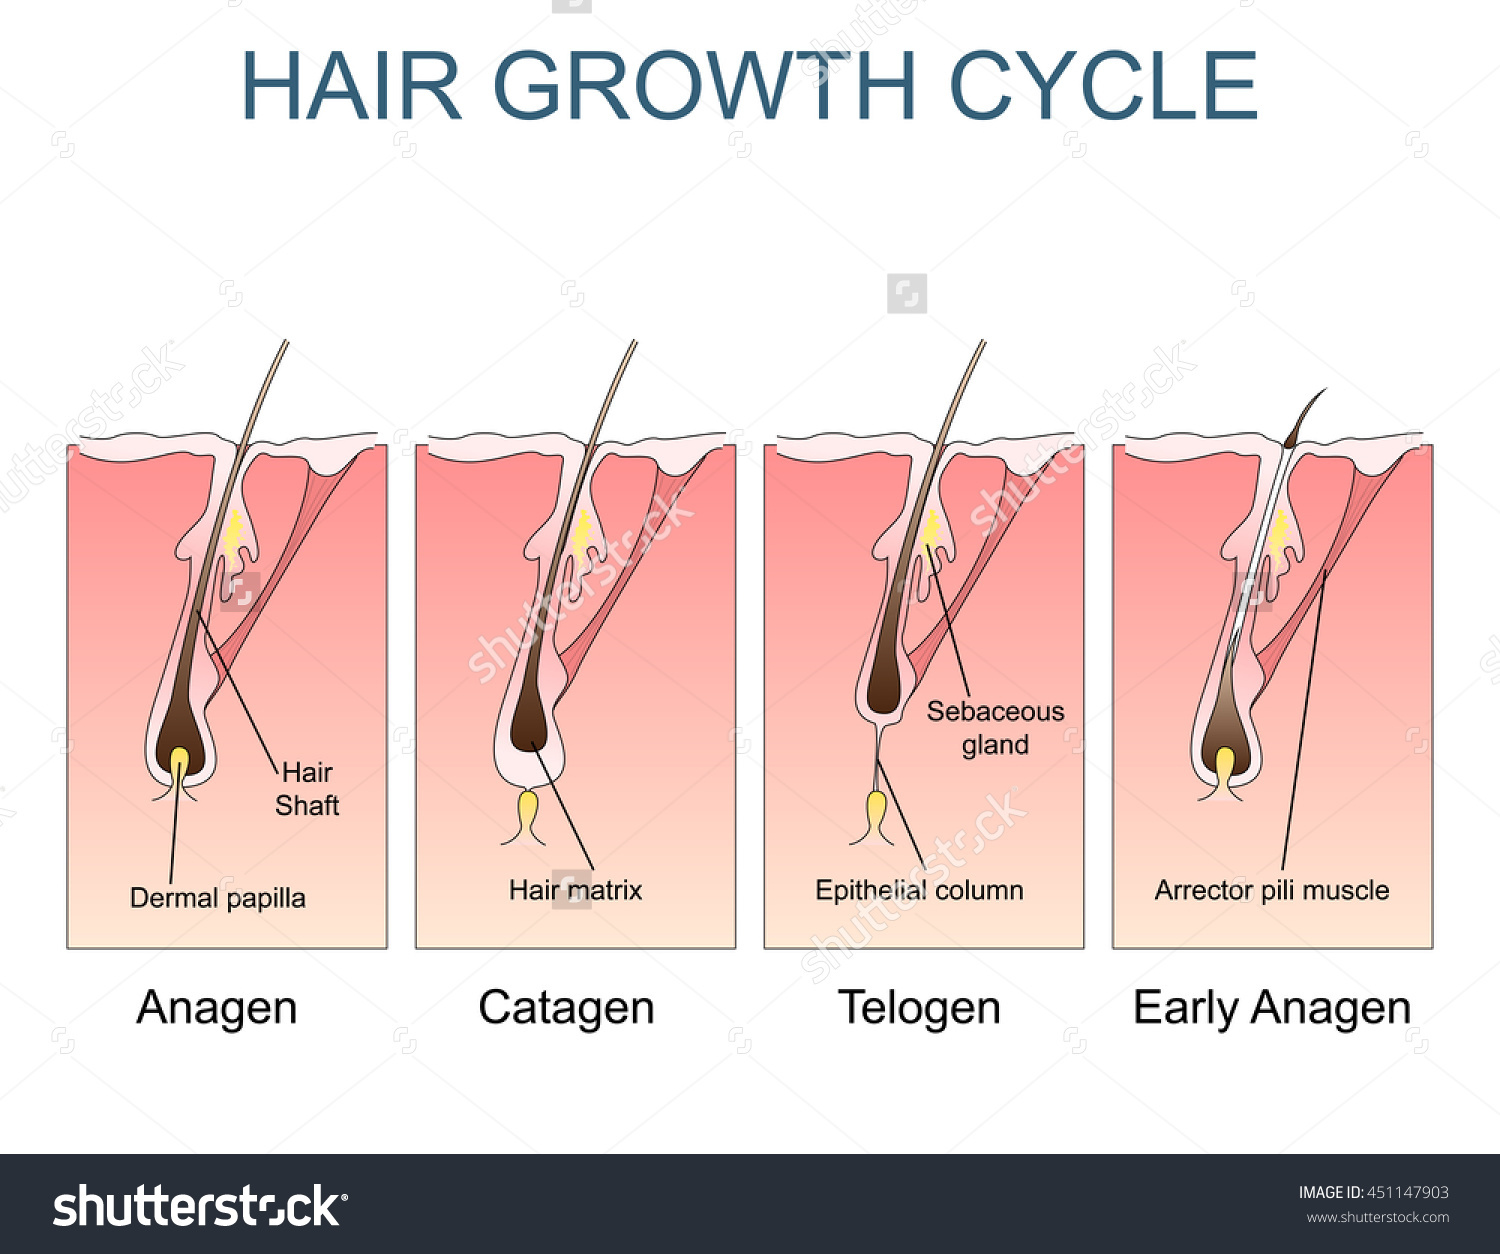 Correct order of hair growth cycle